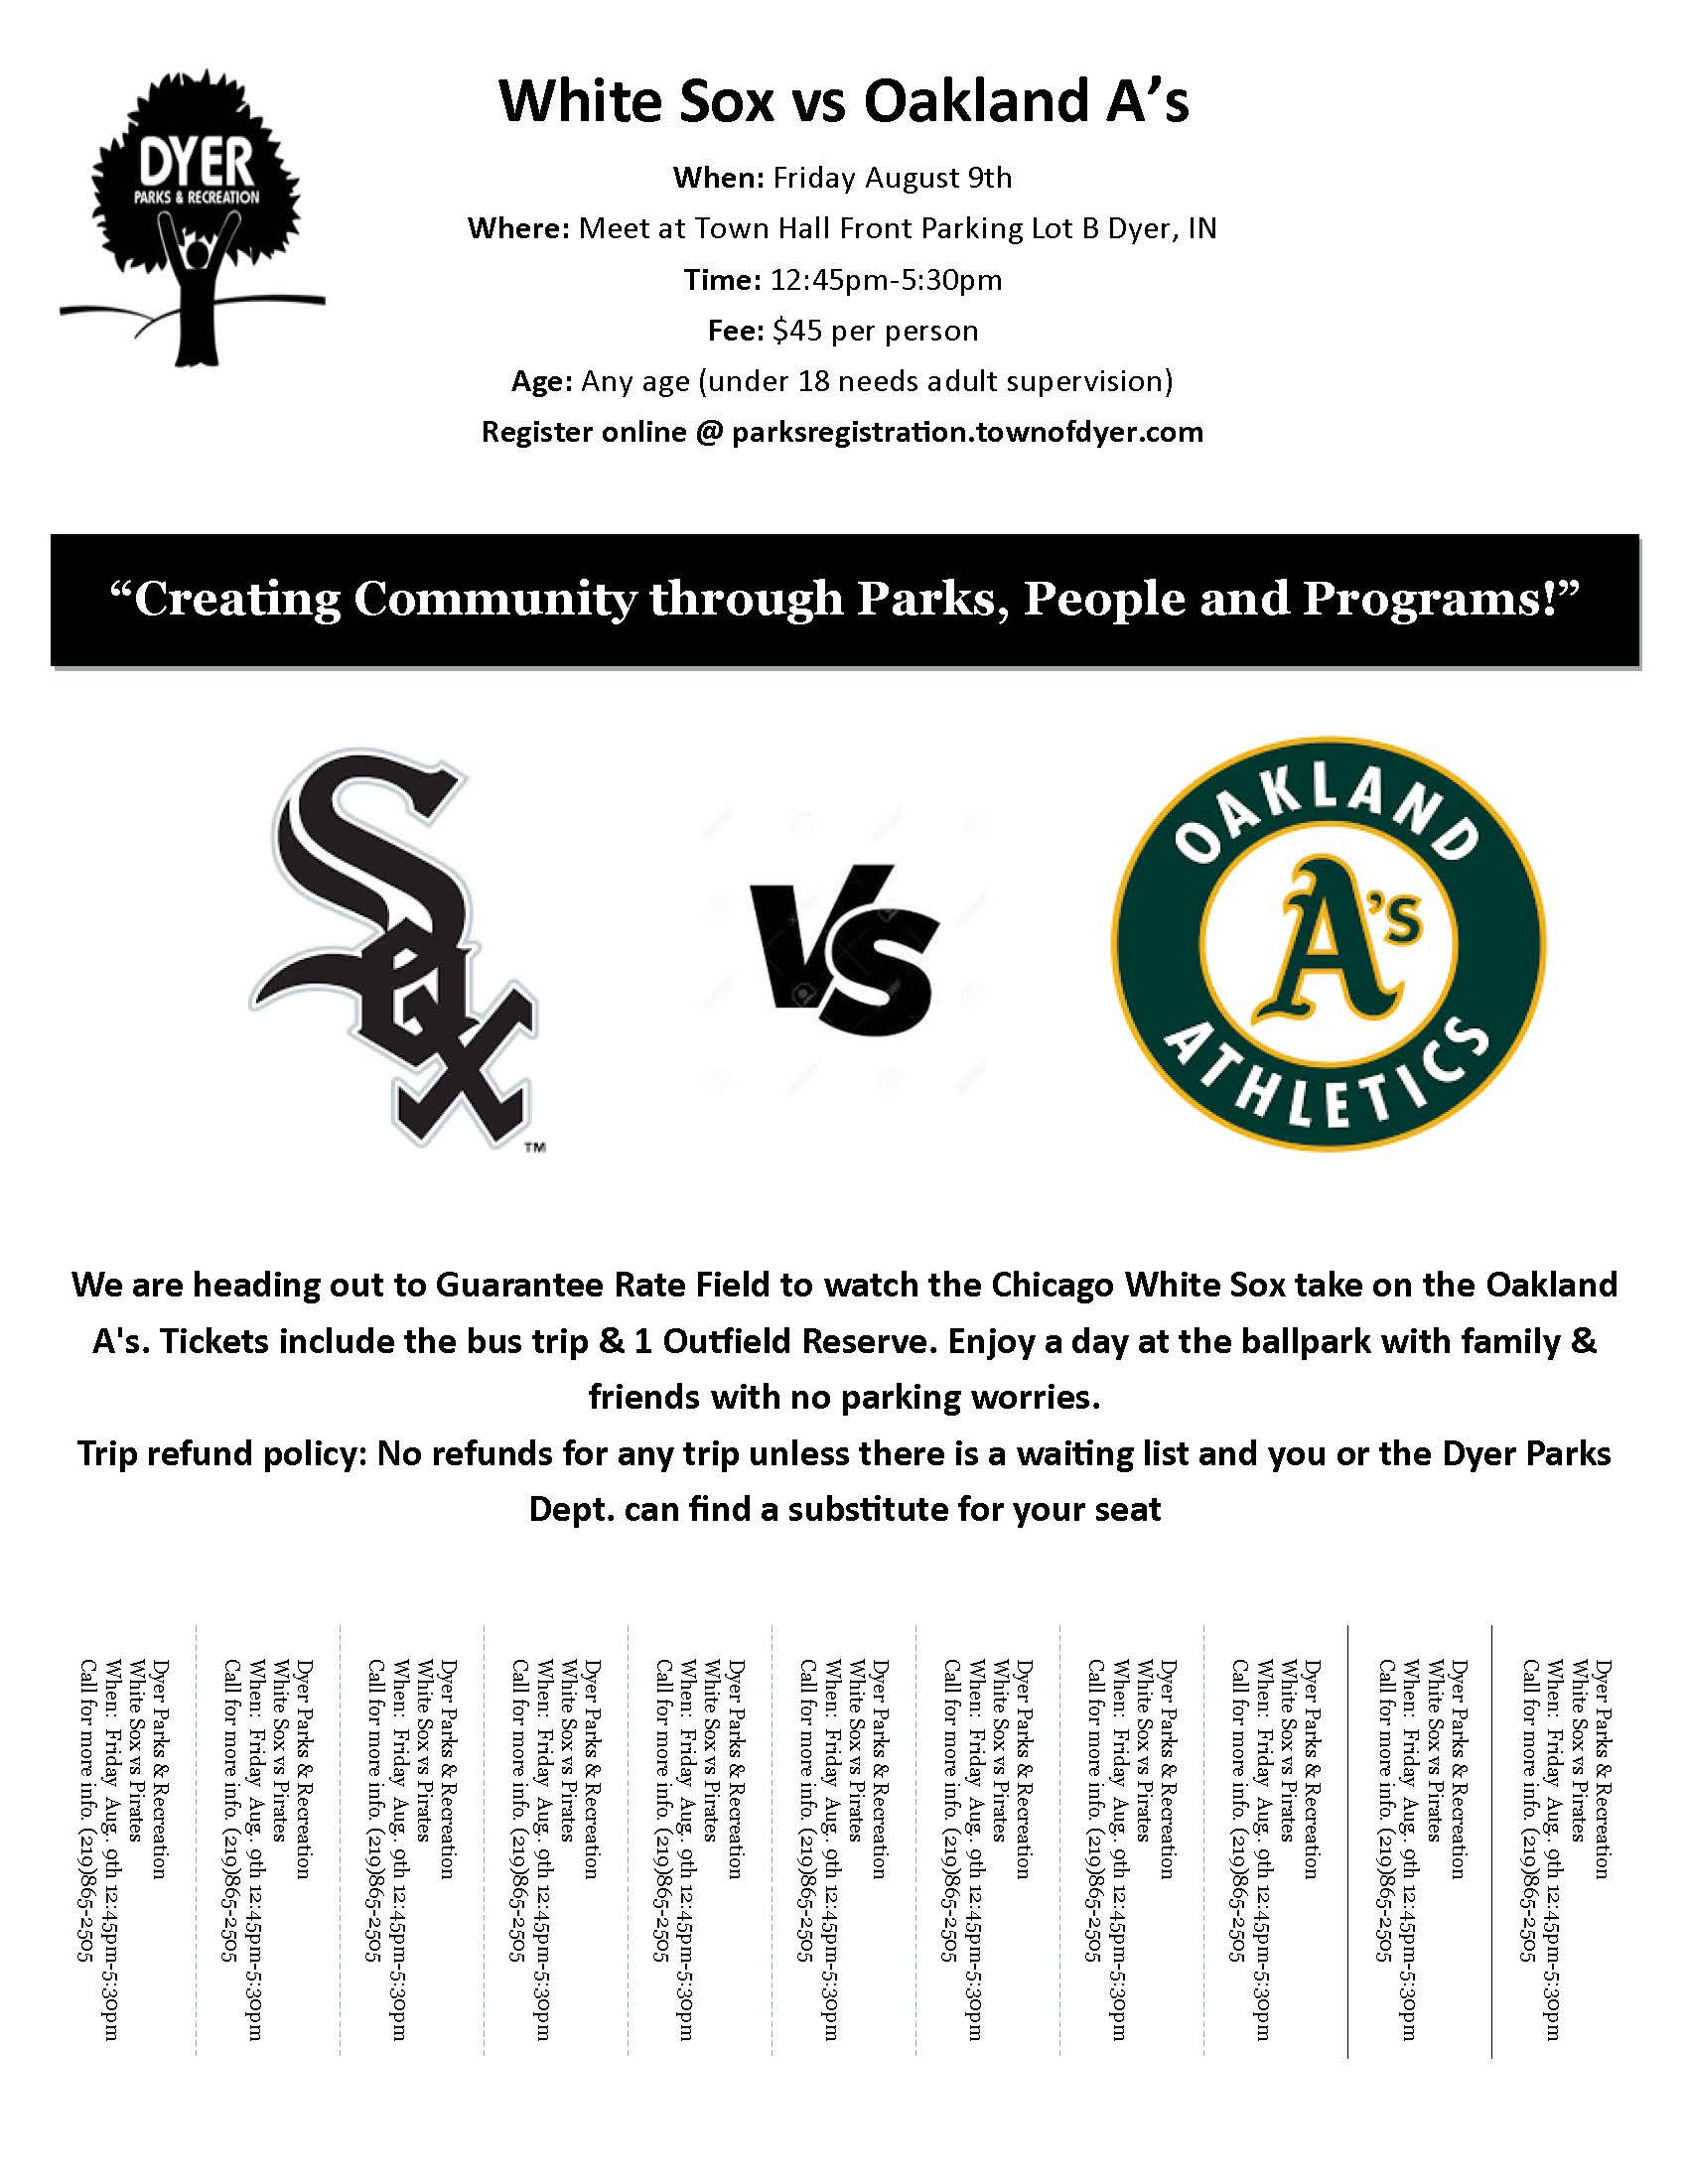 Sox Game Flyer for Dyer Parks and Rec